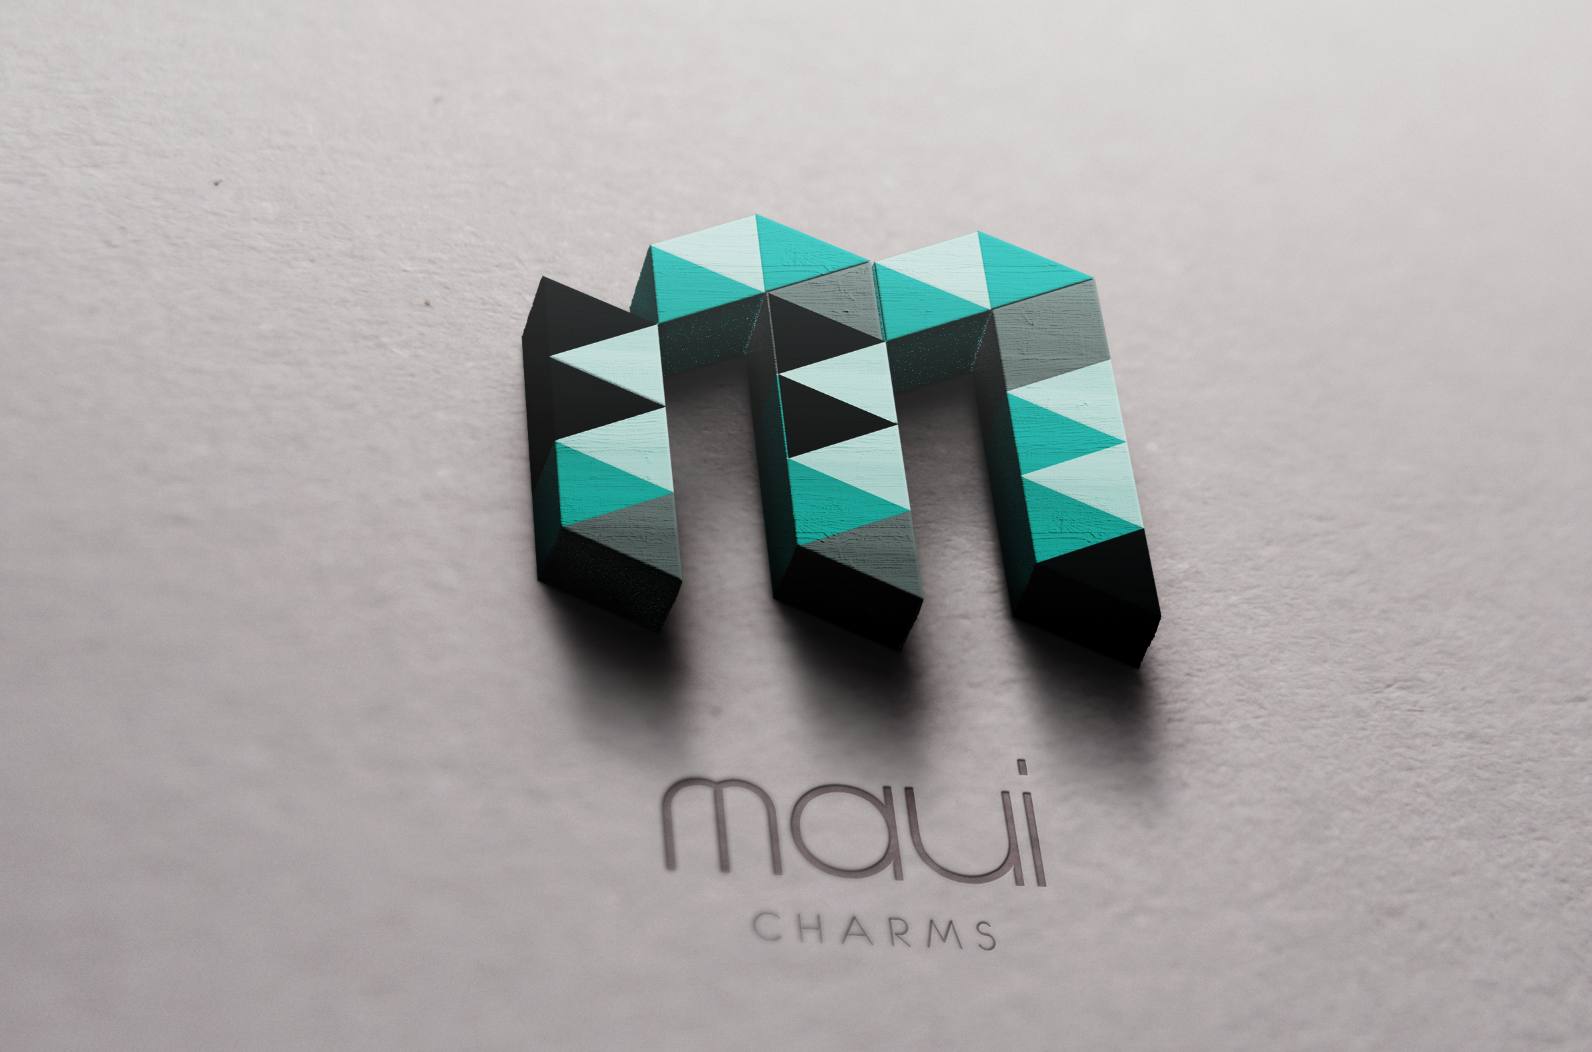 3D charms logo design